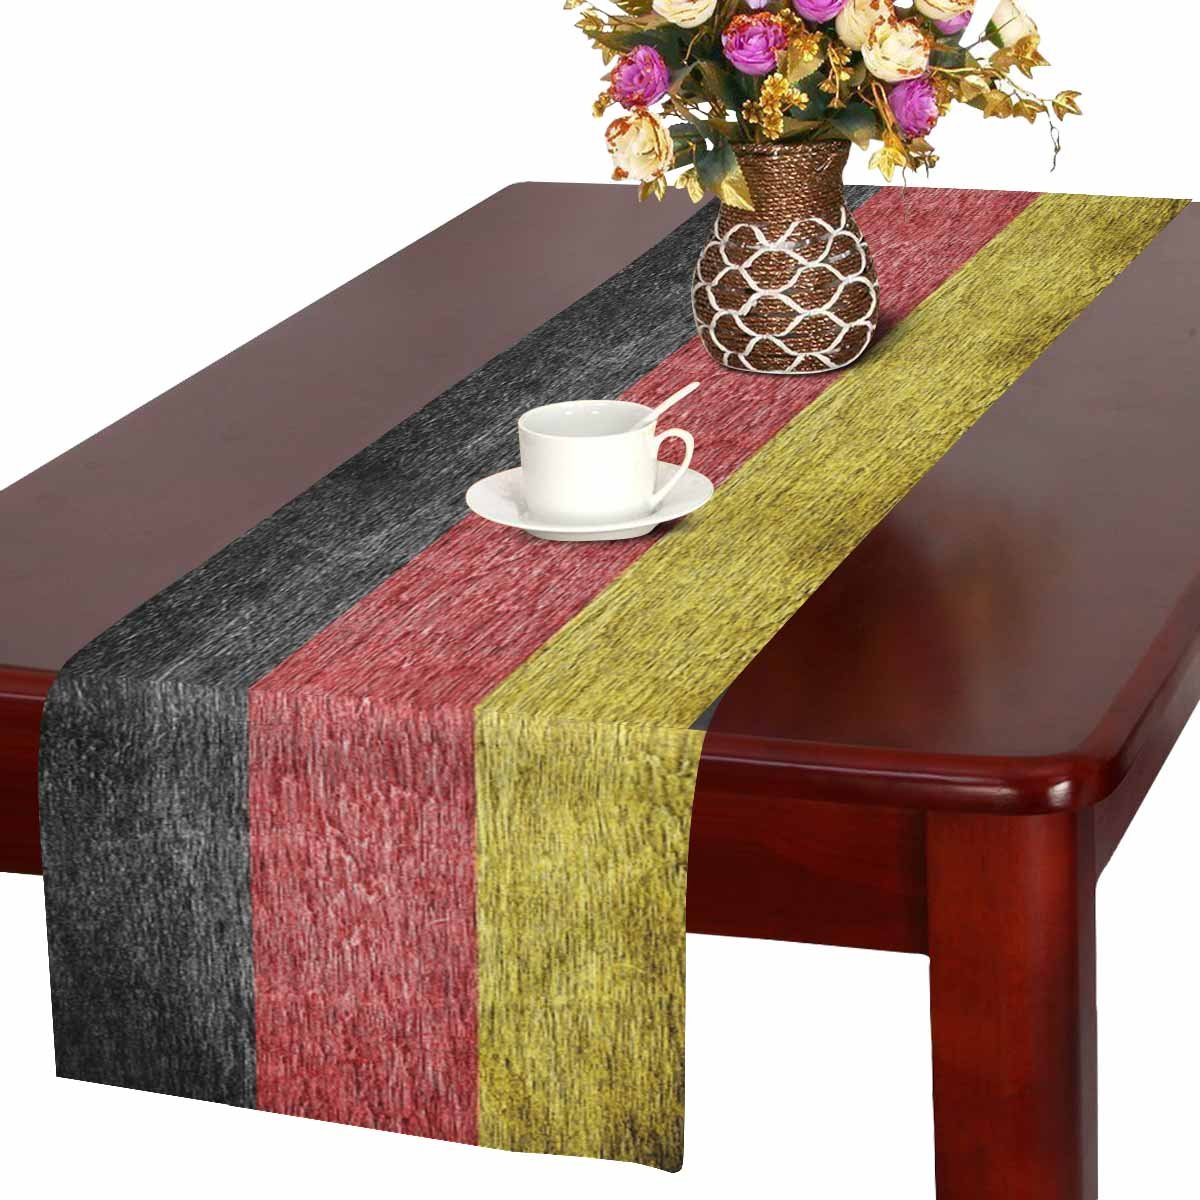 InterestPrint Germany German Flag Painted on Old Wood Table Runner Linen & Cotton Cloth Placemat Home Decor for Wedding Banquet Decoration 16 x 72 Inches